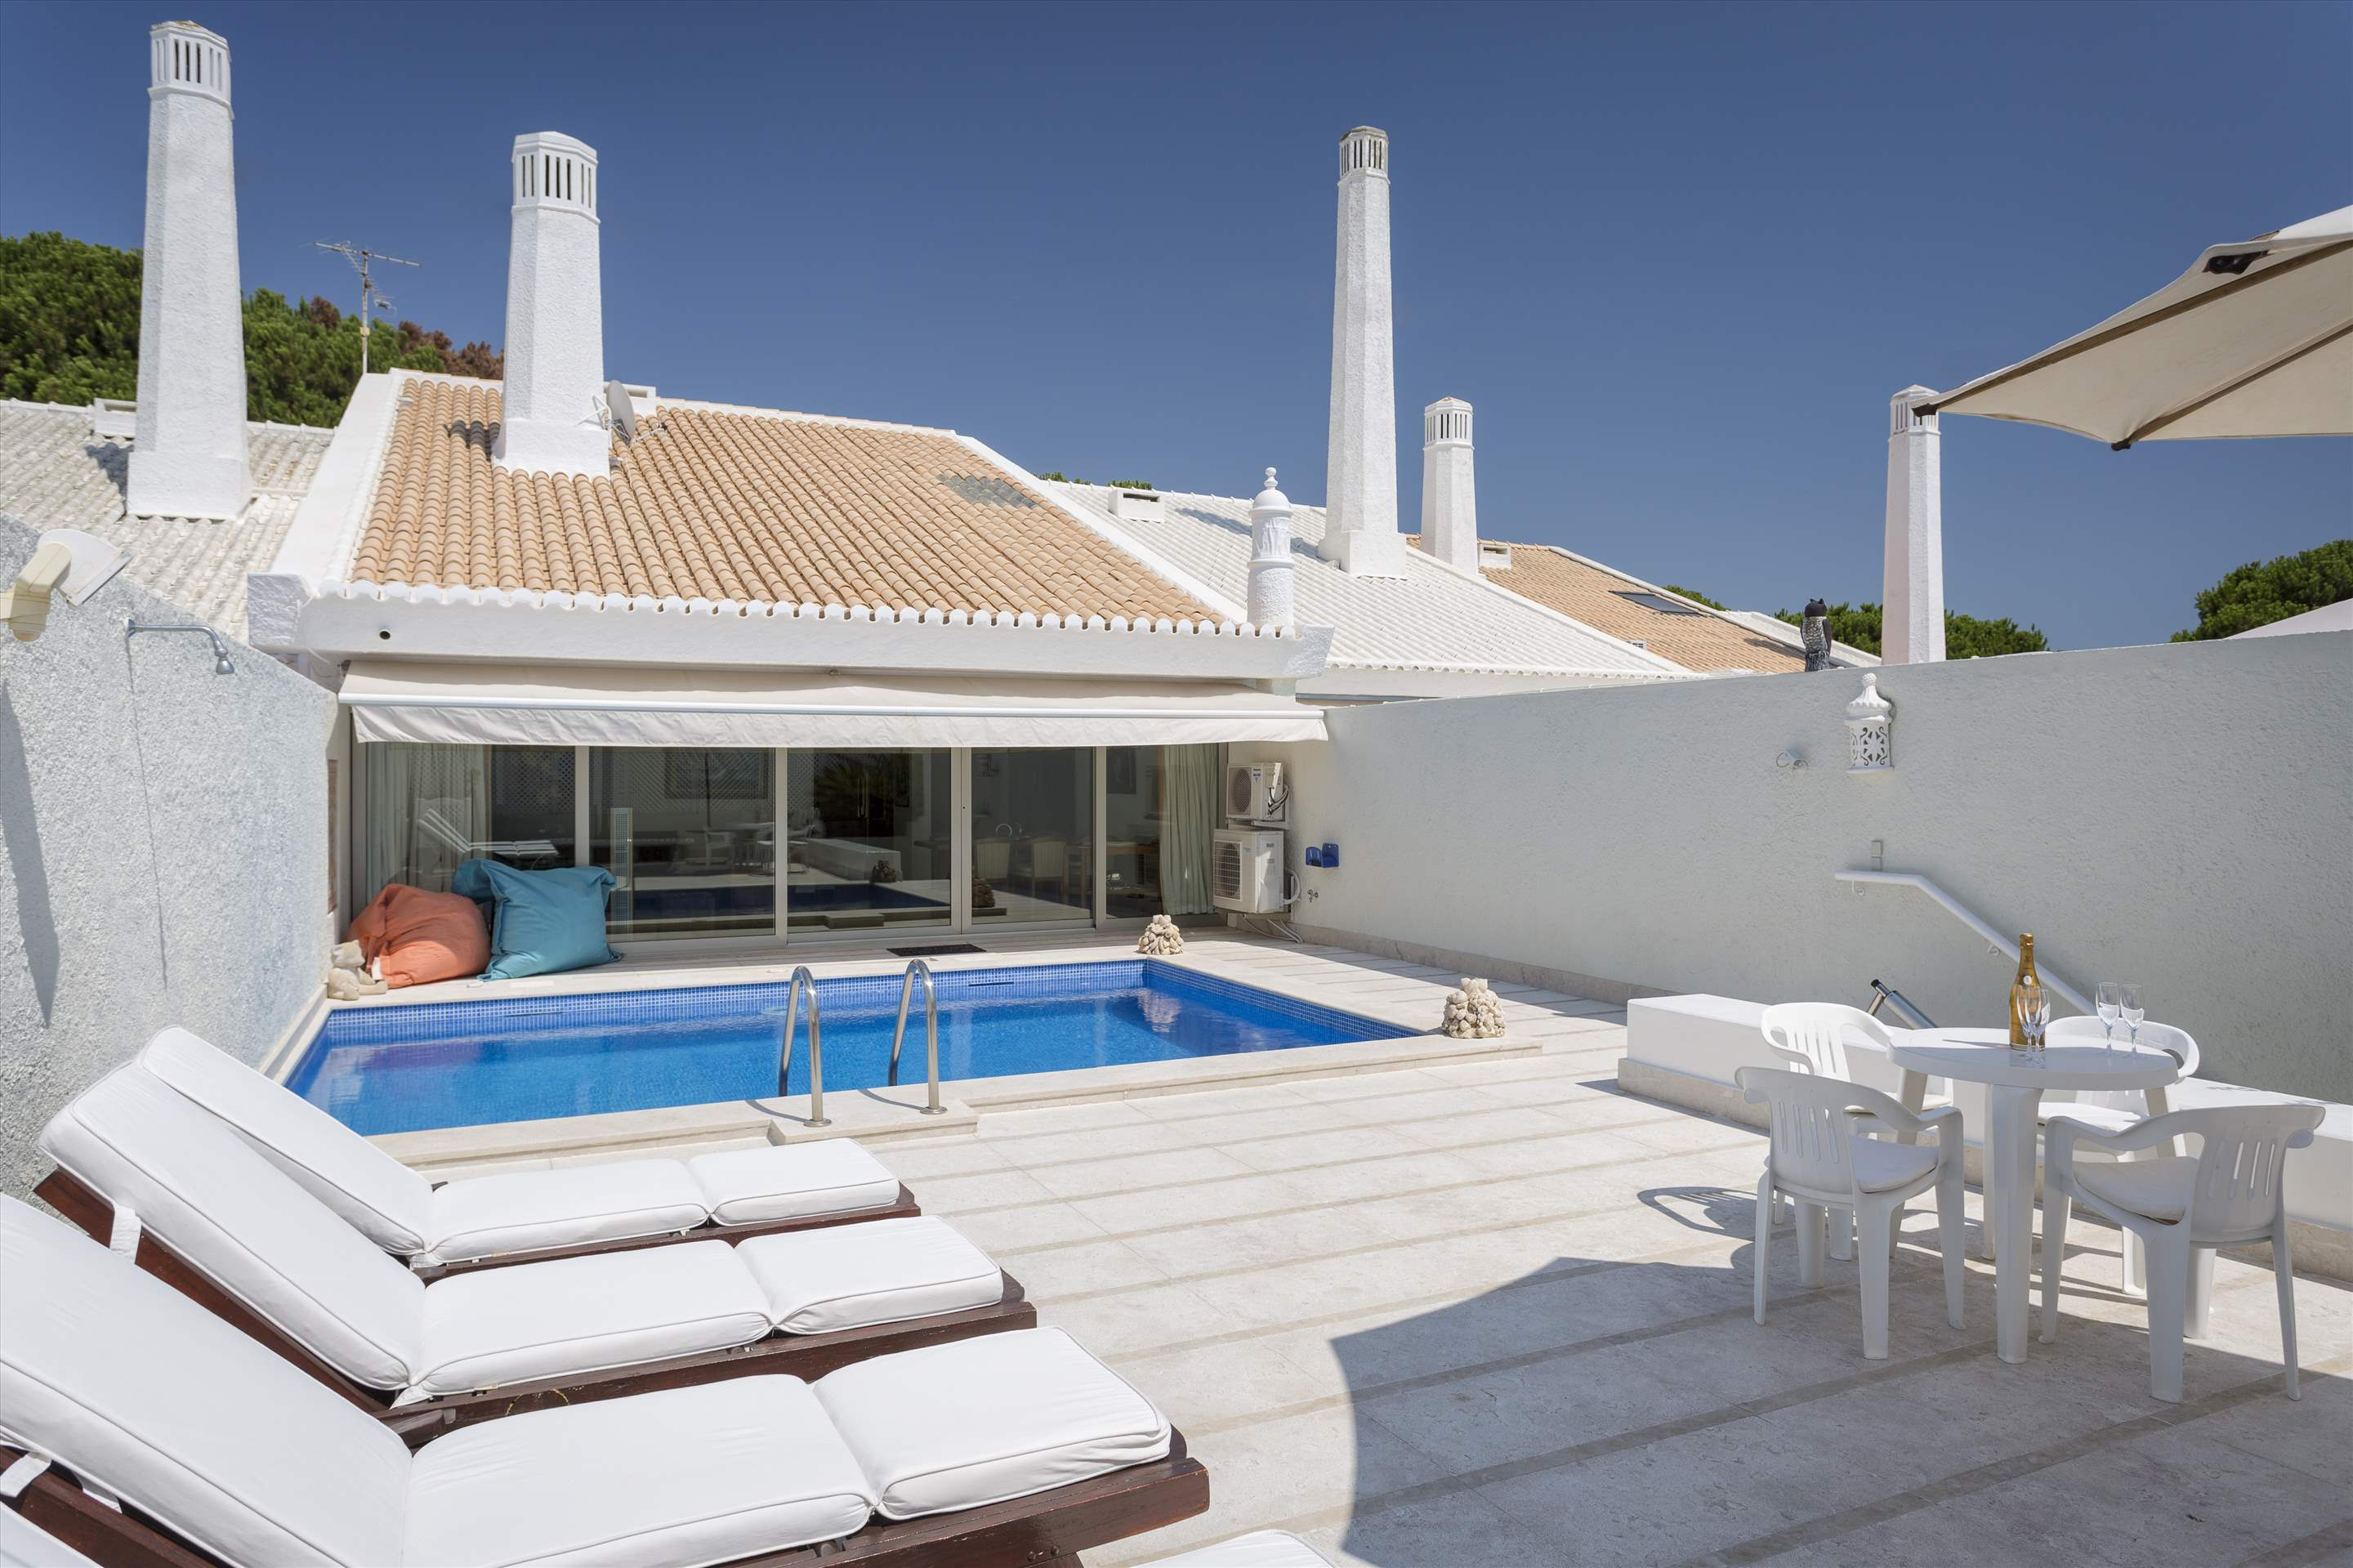 Villa Valerie one, 3 bedroom villa in Vilamoura Area, Algarve Photo #1